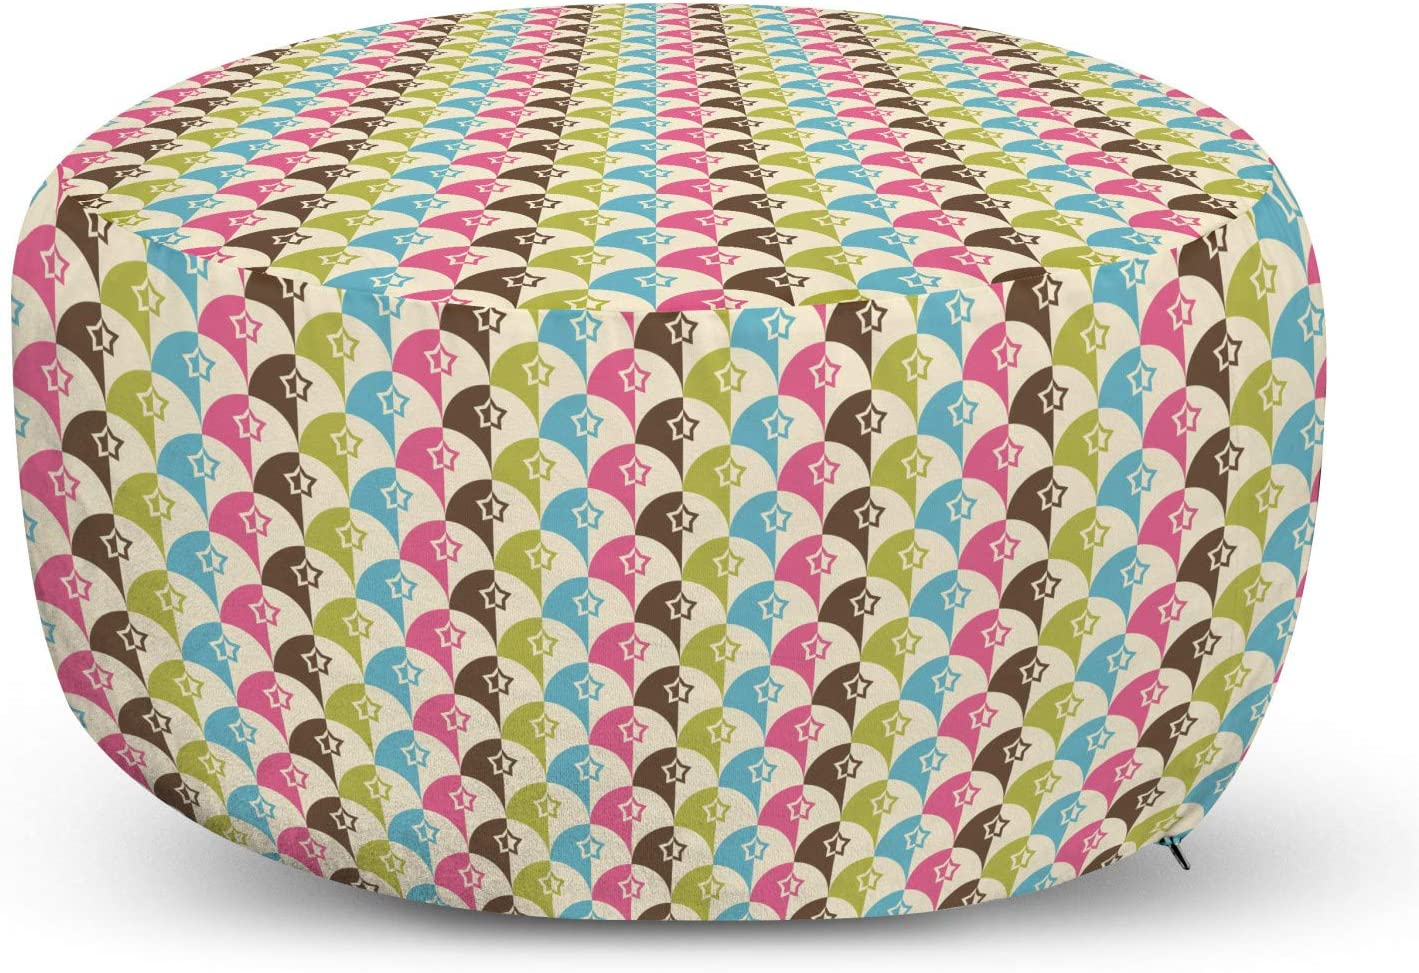 Ambesonne Free shipping / New Mid Century Pouf Cover De Colorful Courier shipping free Zipper with Scales